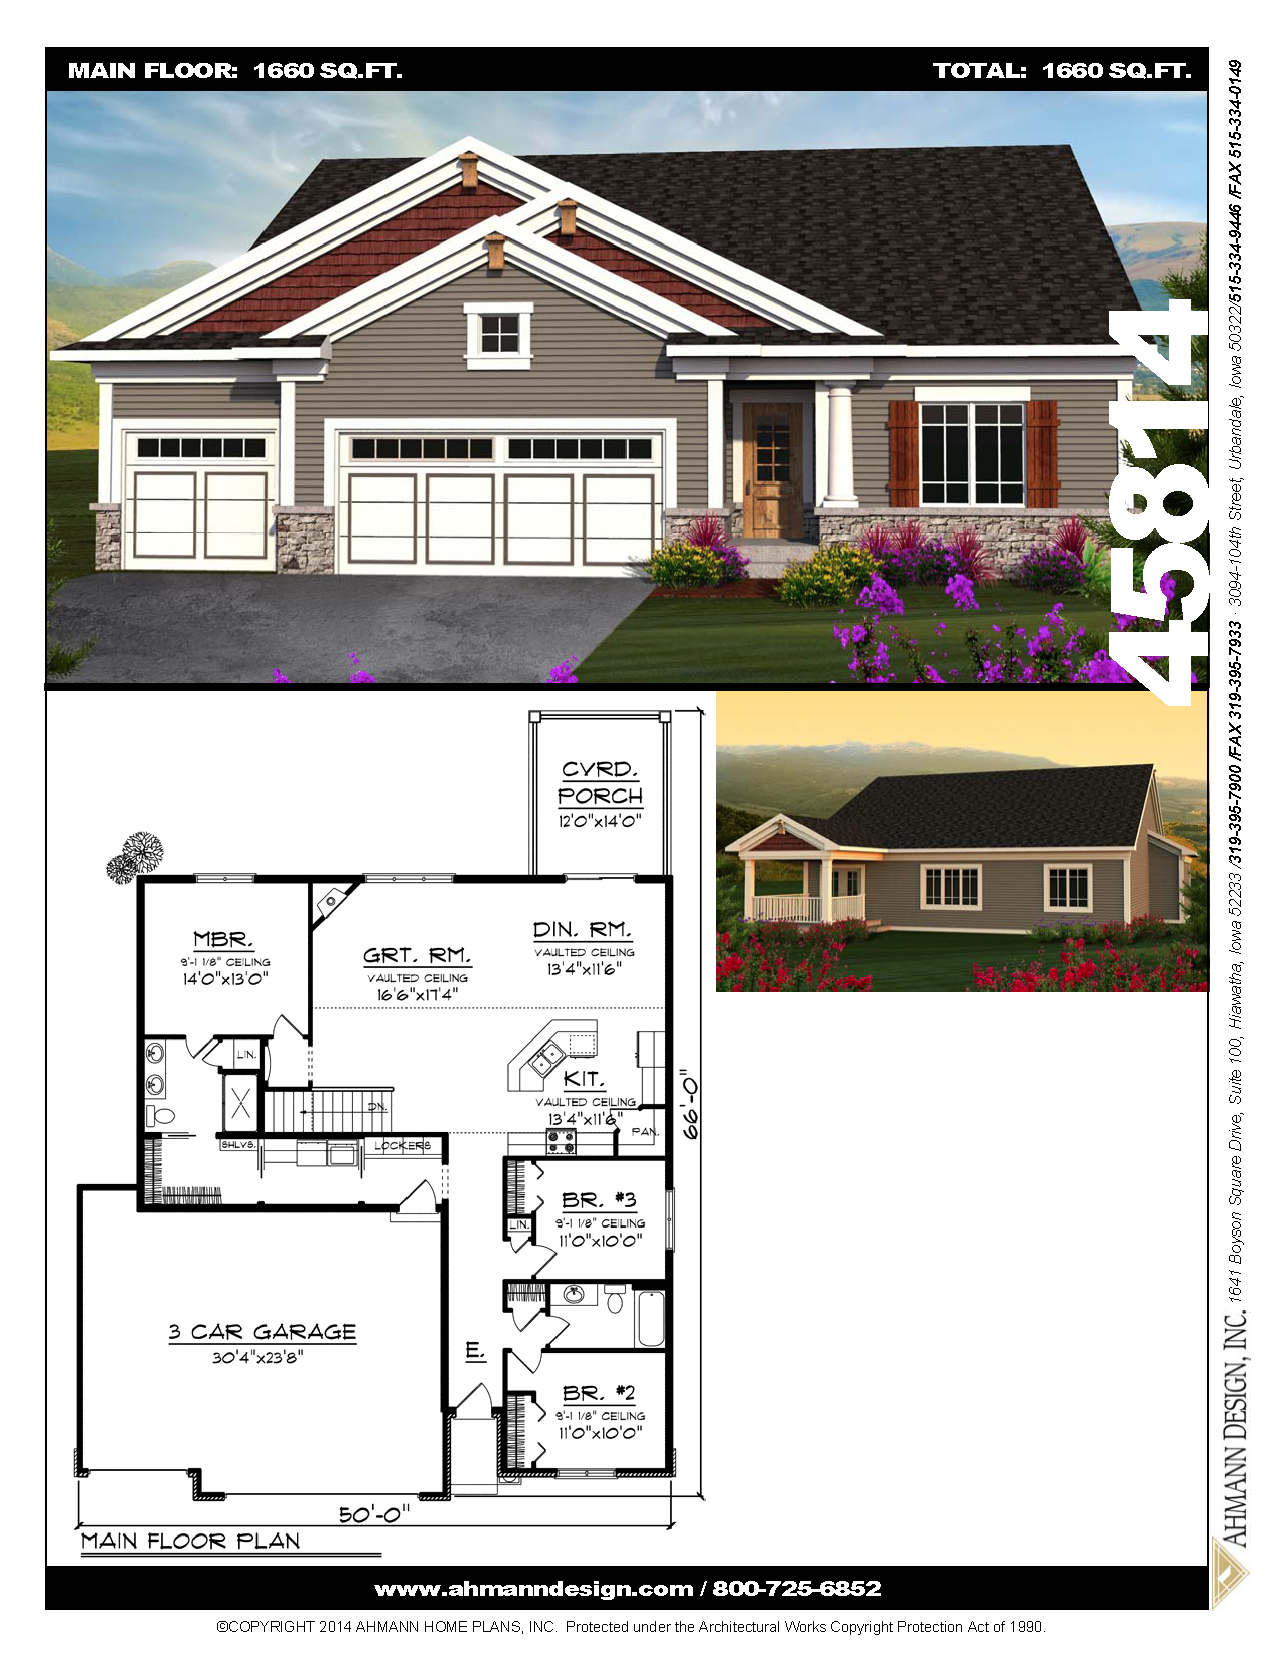 Ahmann Design Plan 45814 This Classic Ranch Sports An Easy To Build Roof Line Shuttered Windows And A Large Colu House Layout Plans House Plans House Layouts